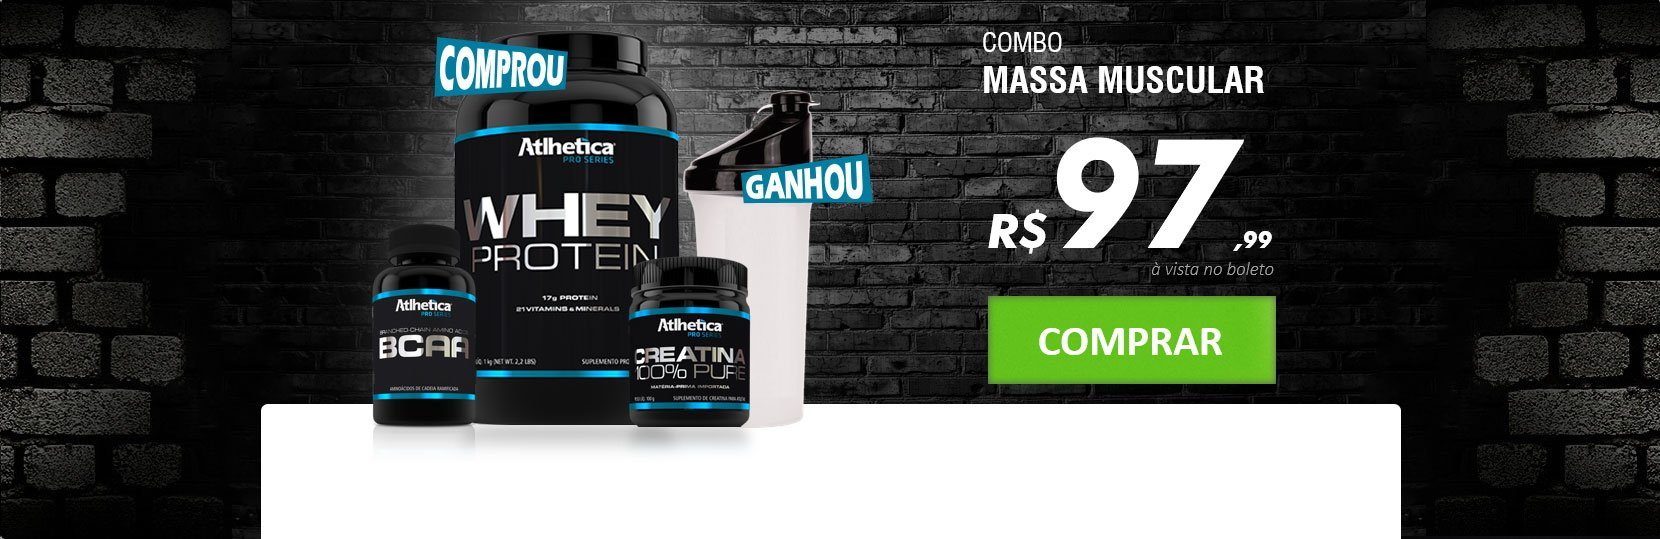 combo-kit-massa-muscular-atlhetica